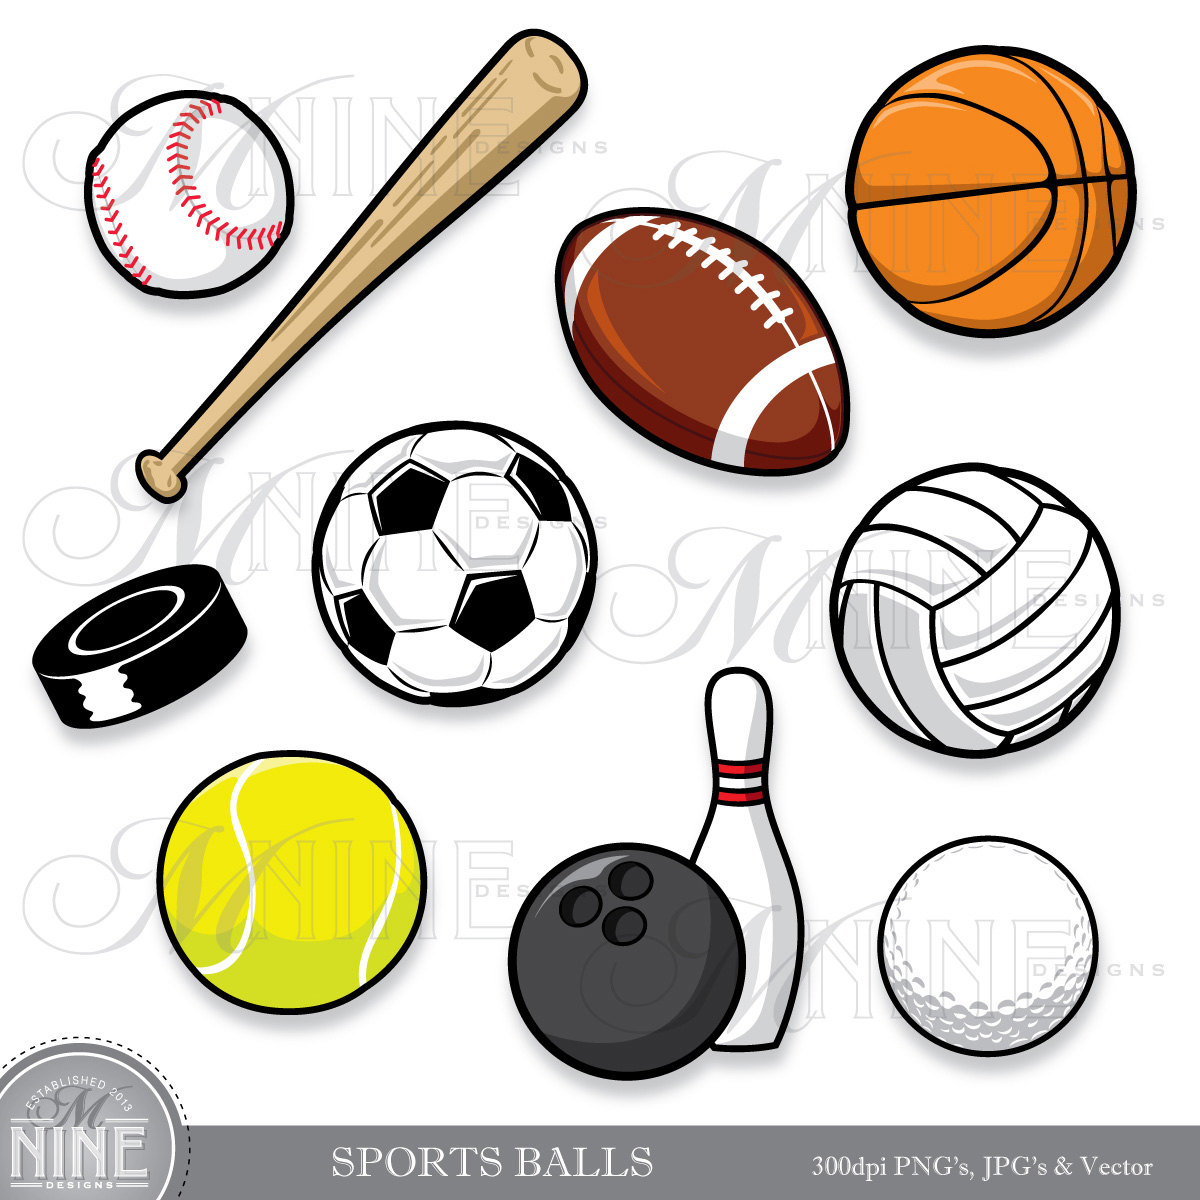 ... Sport Ball Digital Clipart Vector Ar-... Sport Ball Digital Clipart Vector Art Football Soccer Baseball. -9